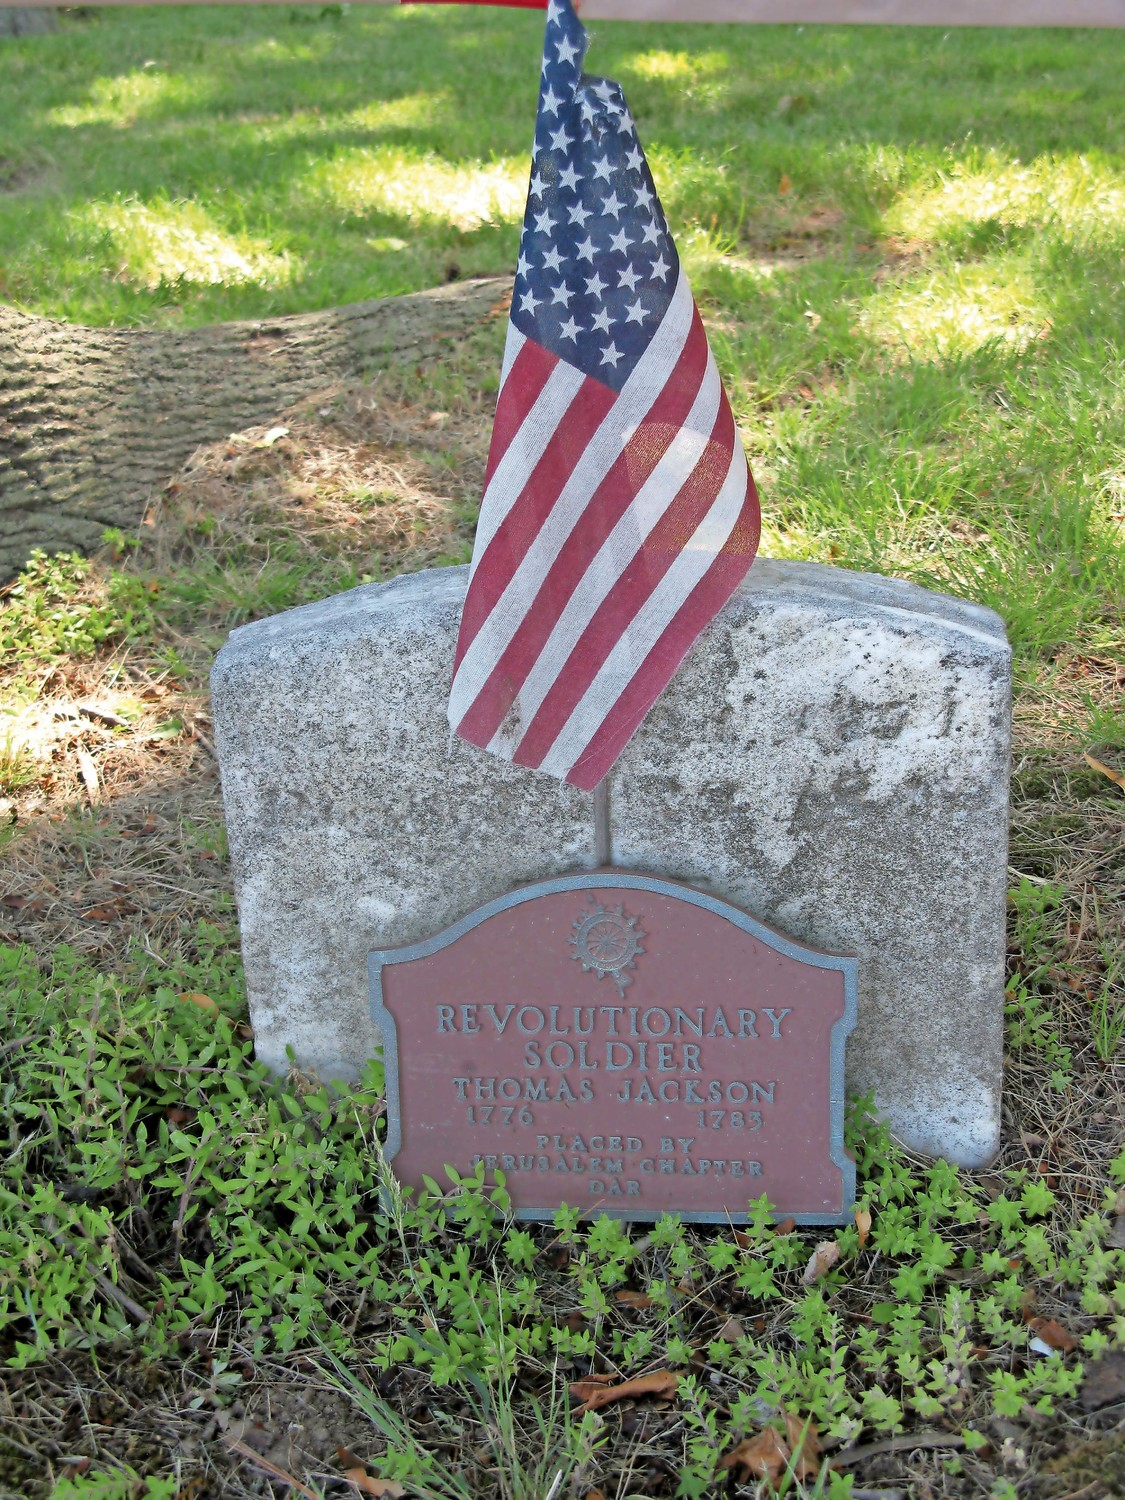 Thomas Jackson, a Revolutionary War soldier, is buried in the Jackson Cemetery.